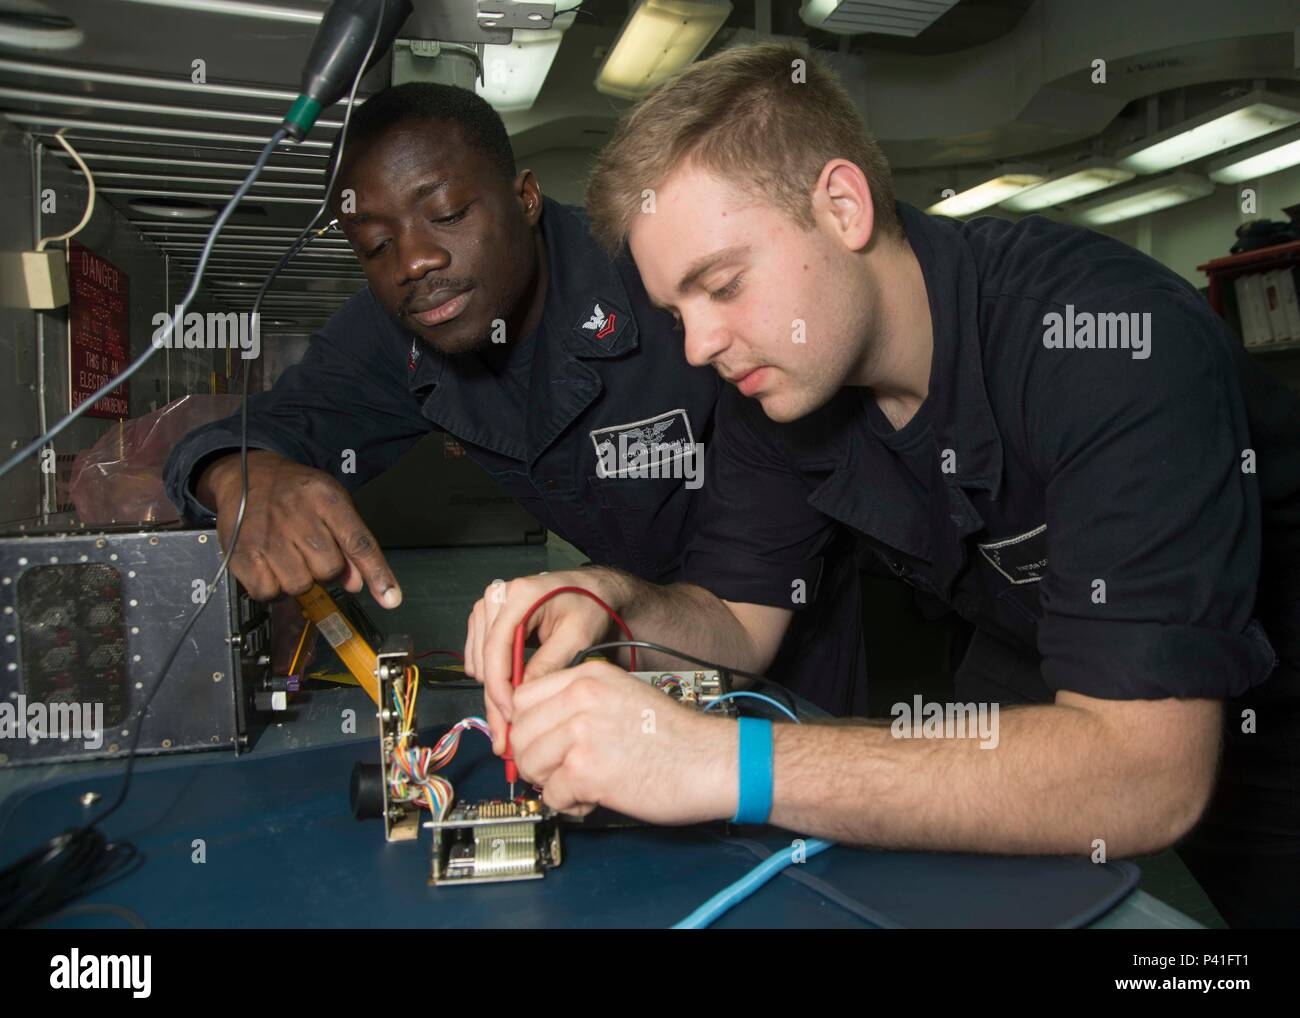 160602 Stock Photos Images Alamy Control Panel Wiring Jobs N Gz228 031 Gulf Of Aden June 2 2016